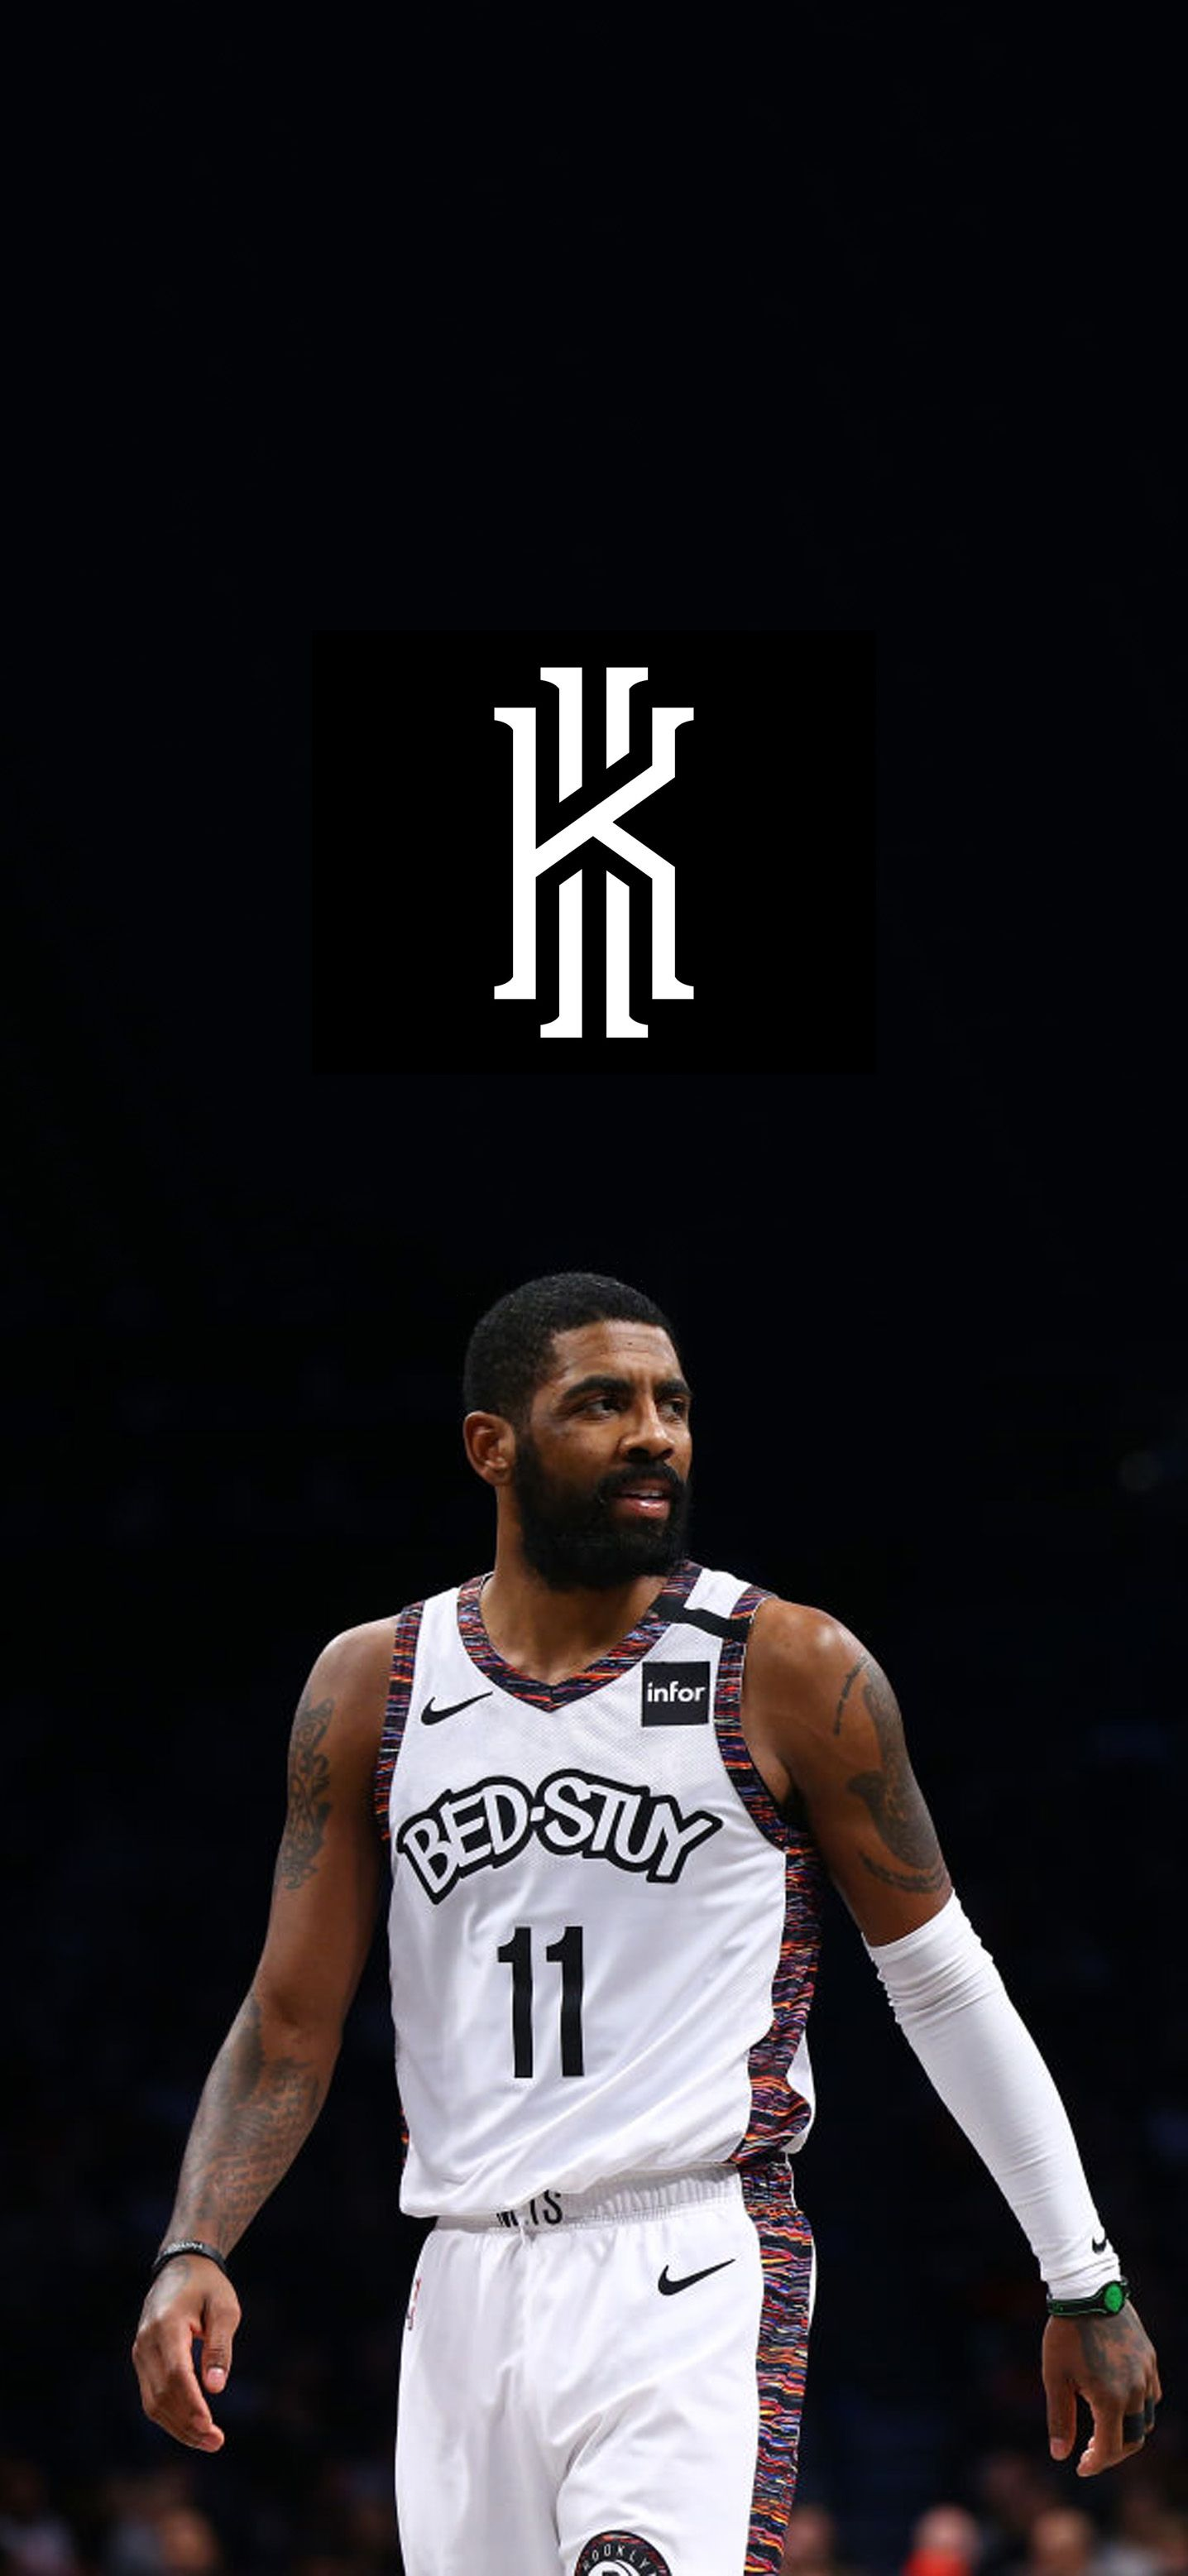 Kyrie Irving Wallpaper In 2020 Irving Wallpapers Kyrie Irving Celtics Kyrie Irving